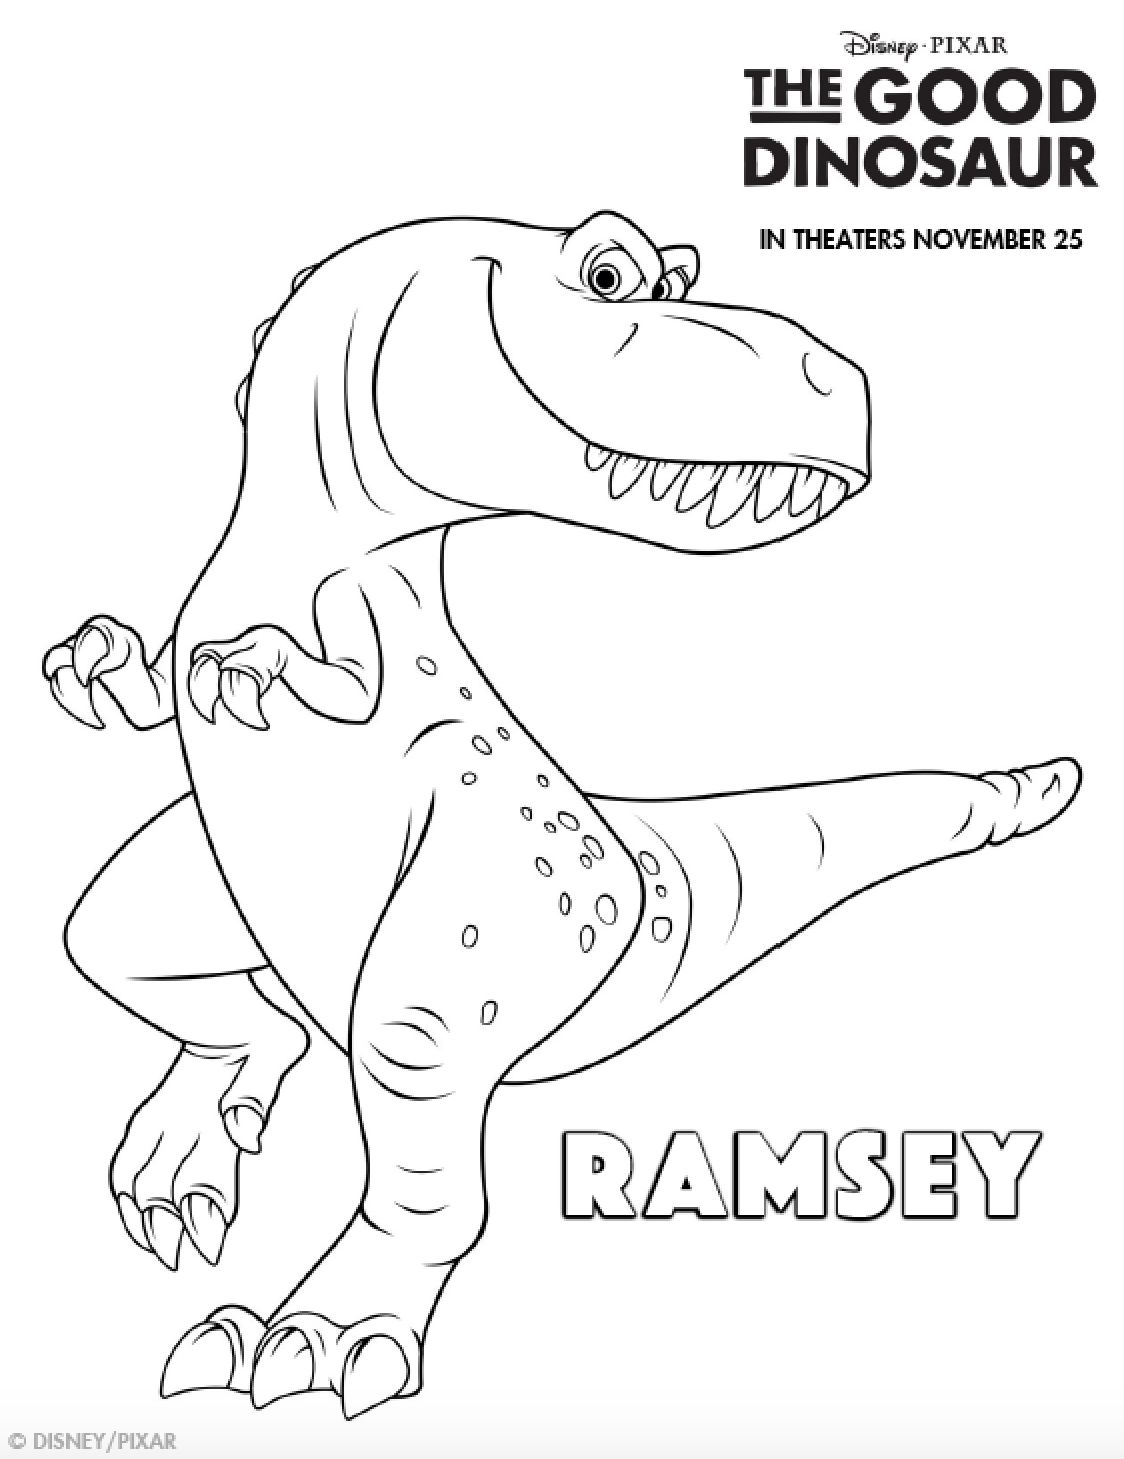 The Good Dinosaur Coloring Pages at GetDrawings.com | Free for ...